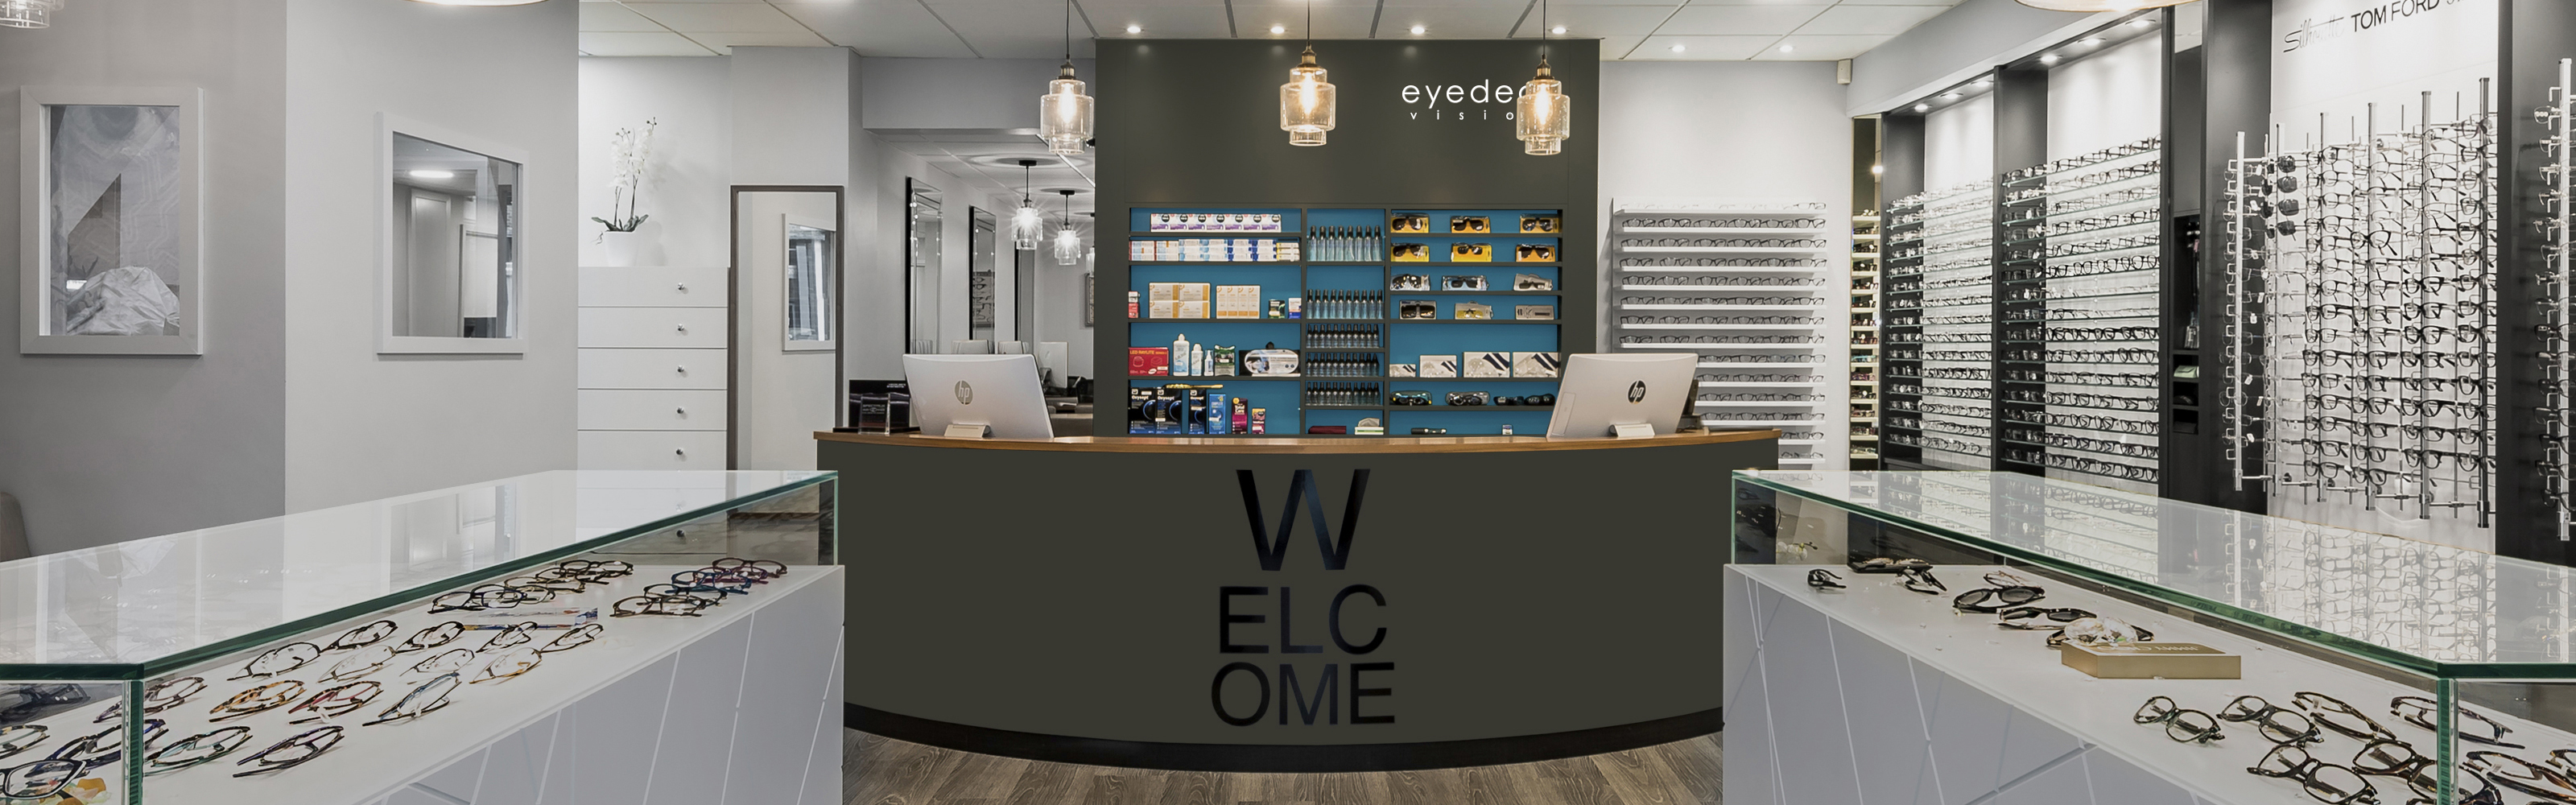 eyedeal vision opticians showroom reception